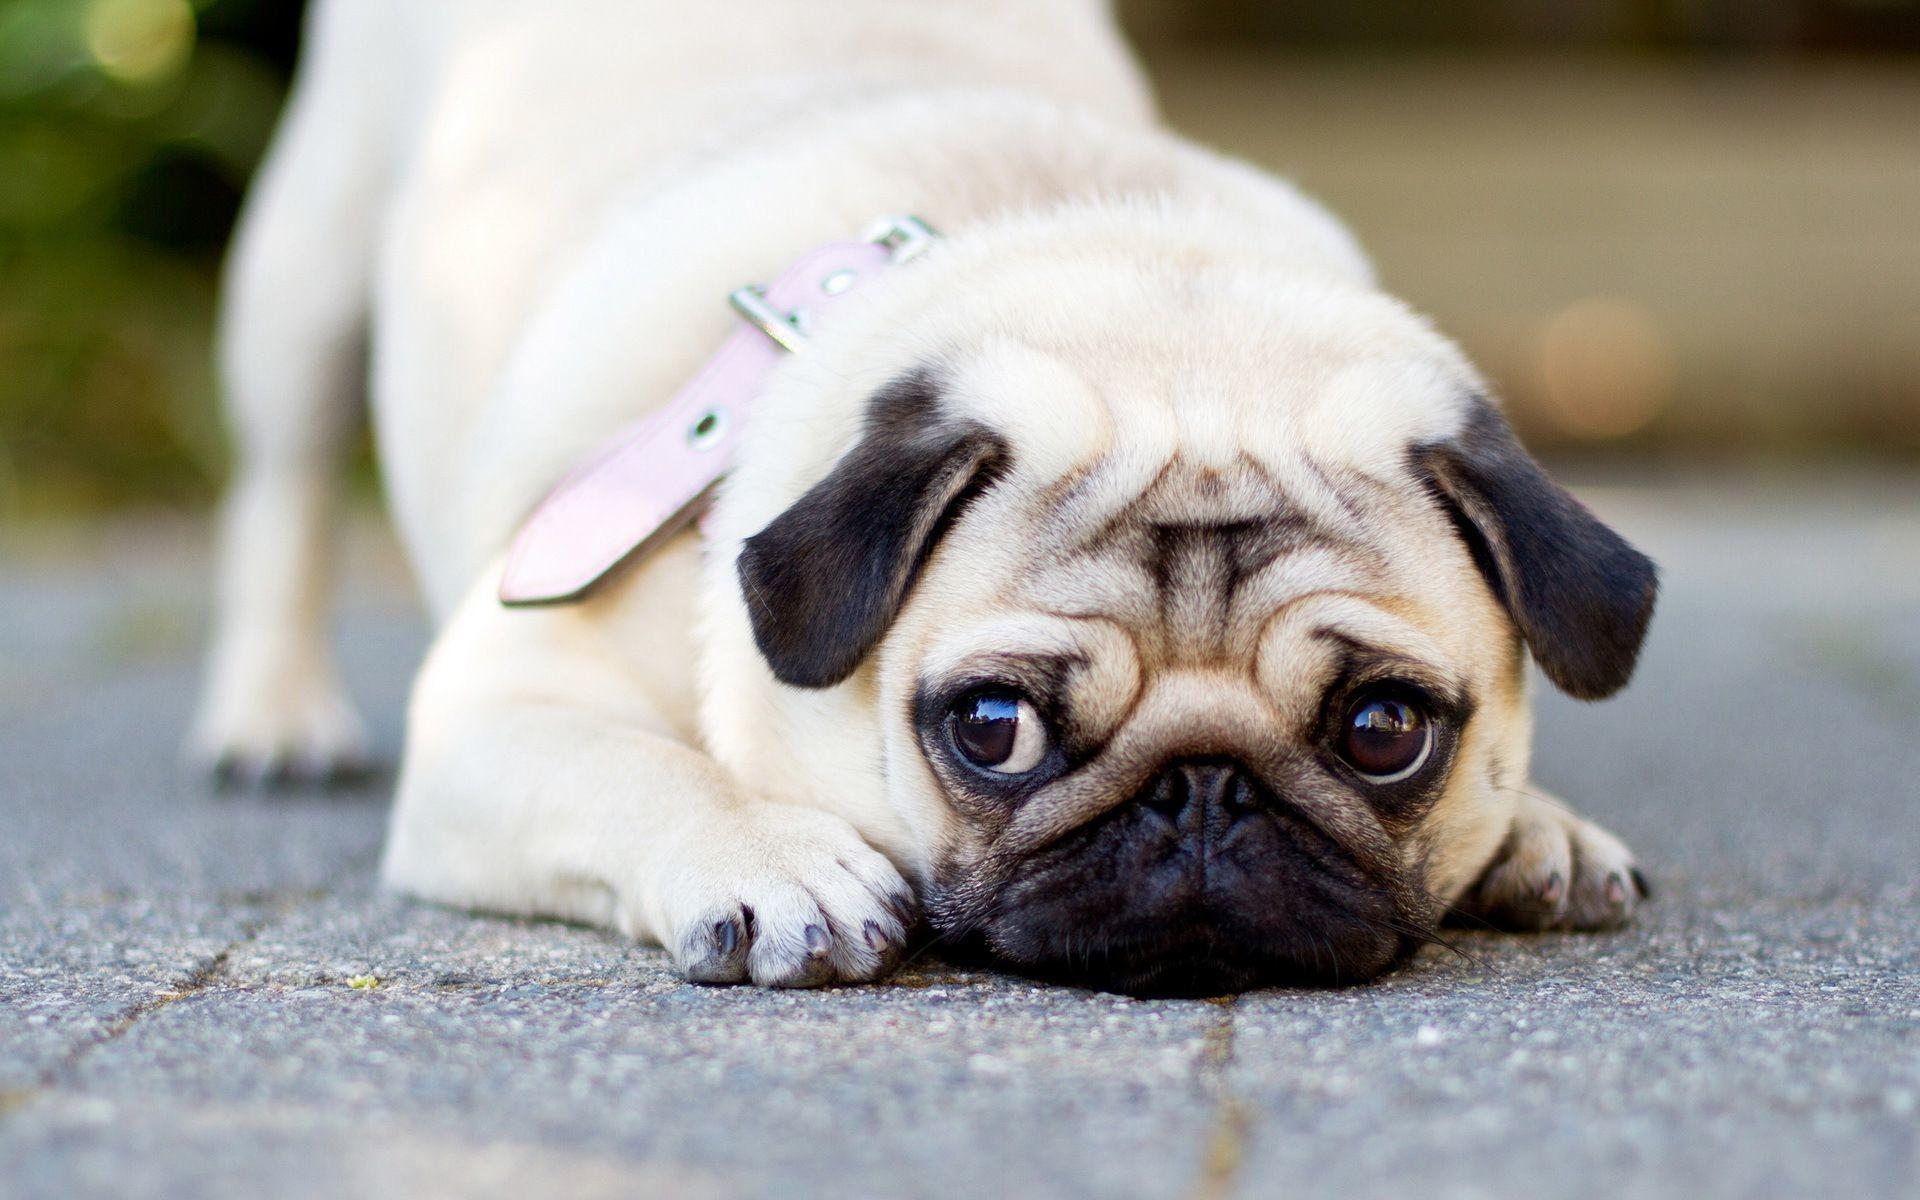 1920x1200 Cute Pug HD Wallpaper 1920x1080 Cute Pug HD Wallpaper